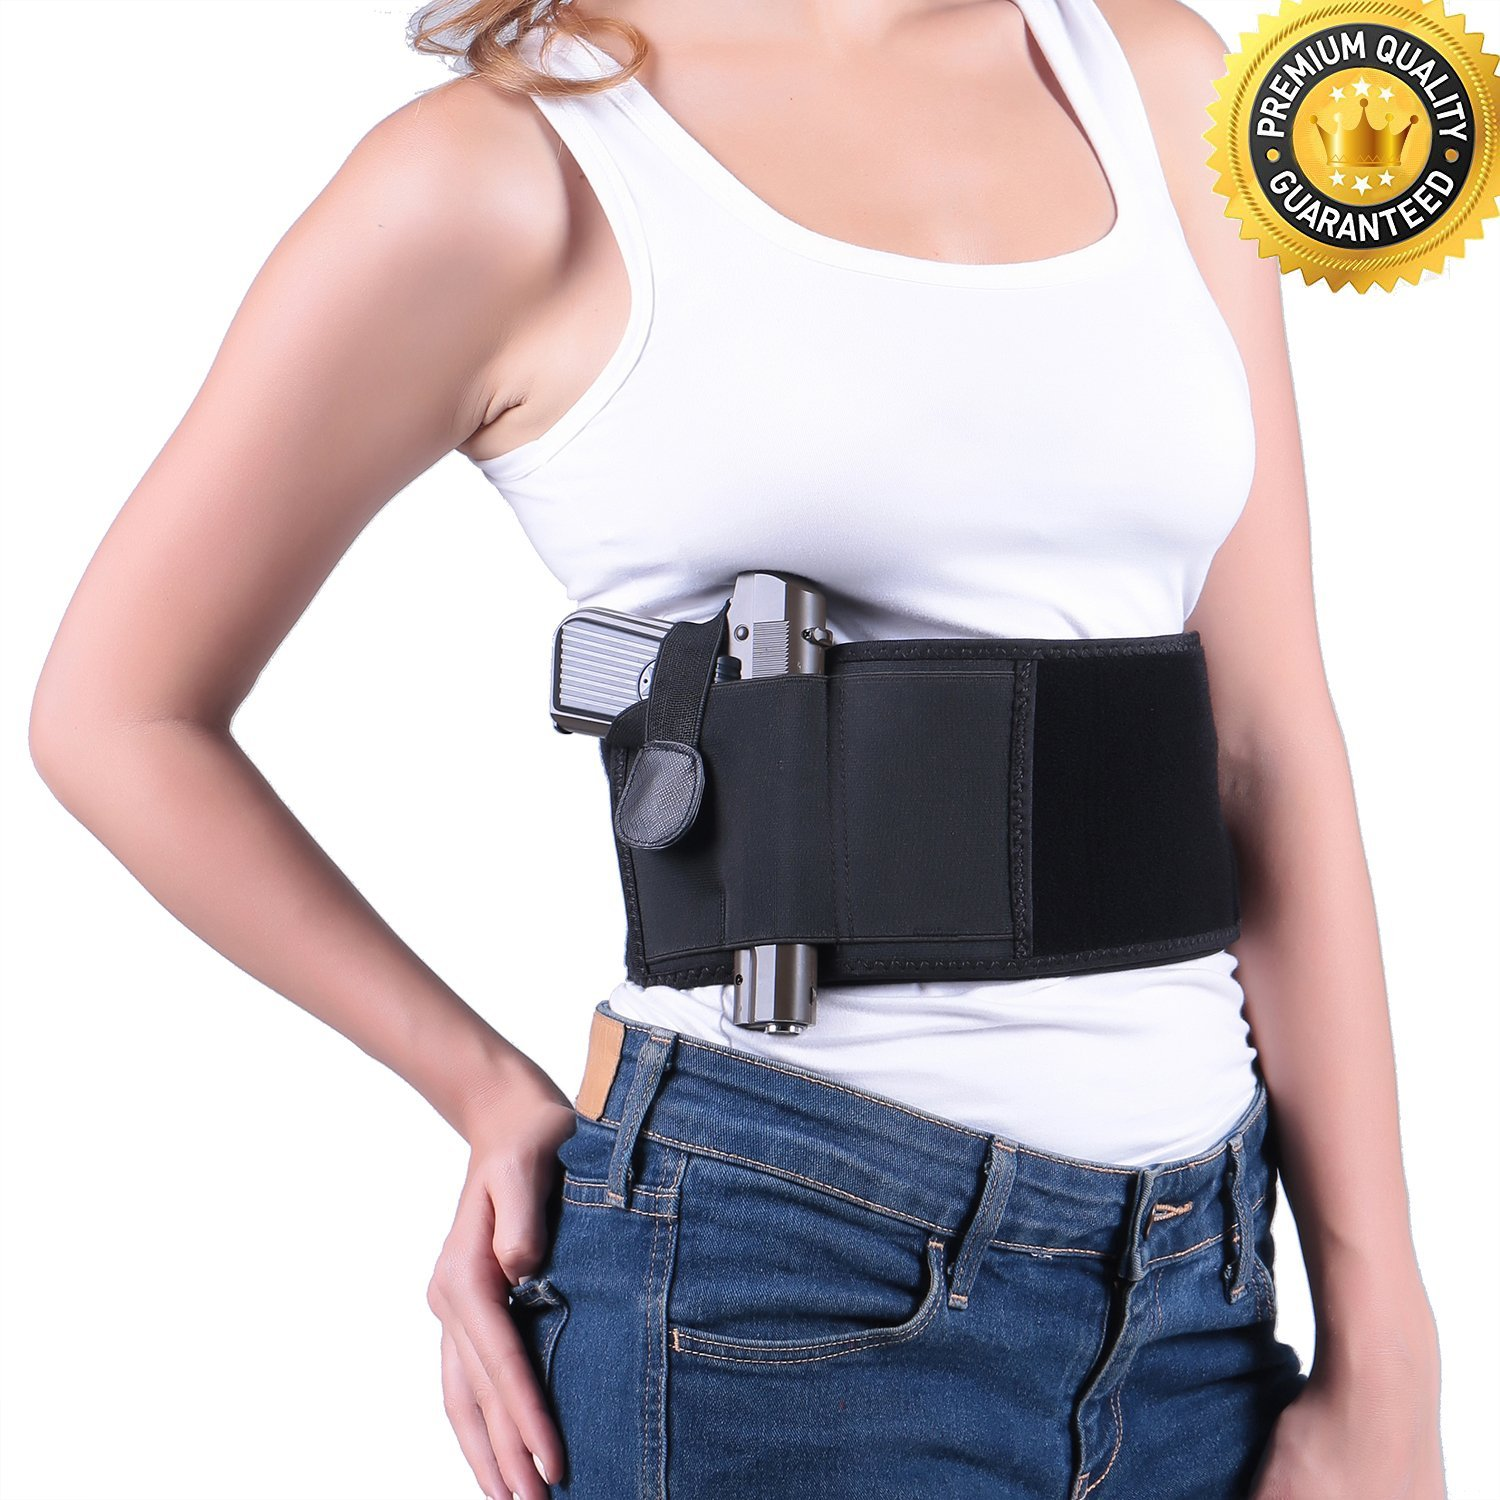 Concealed Carry Gun Holster For Charter Arms 38 Undercover Hunting